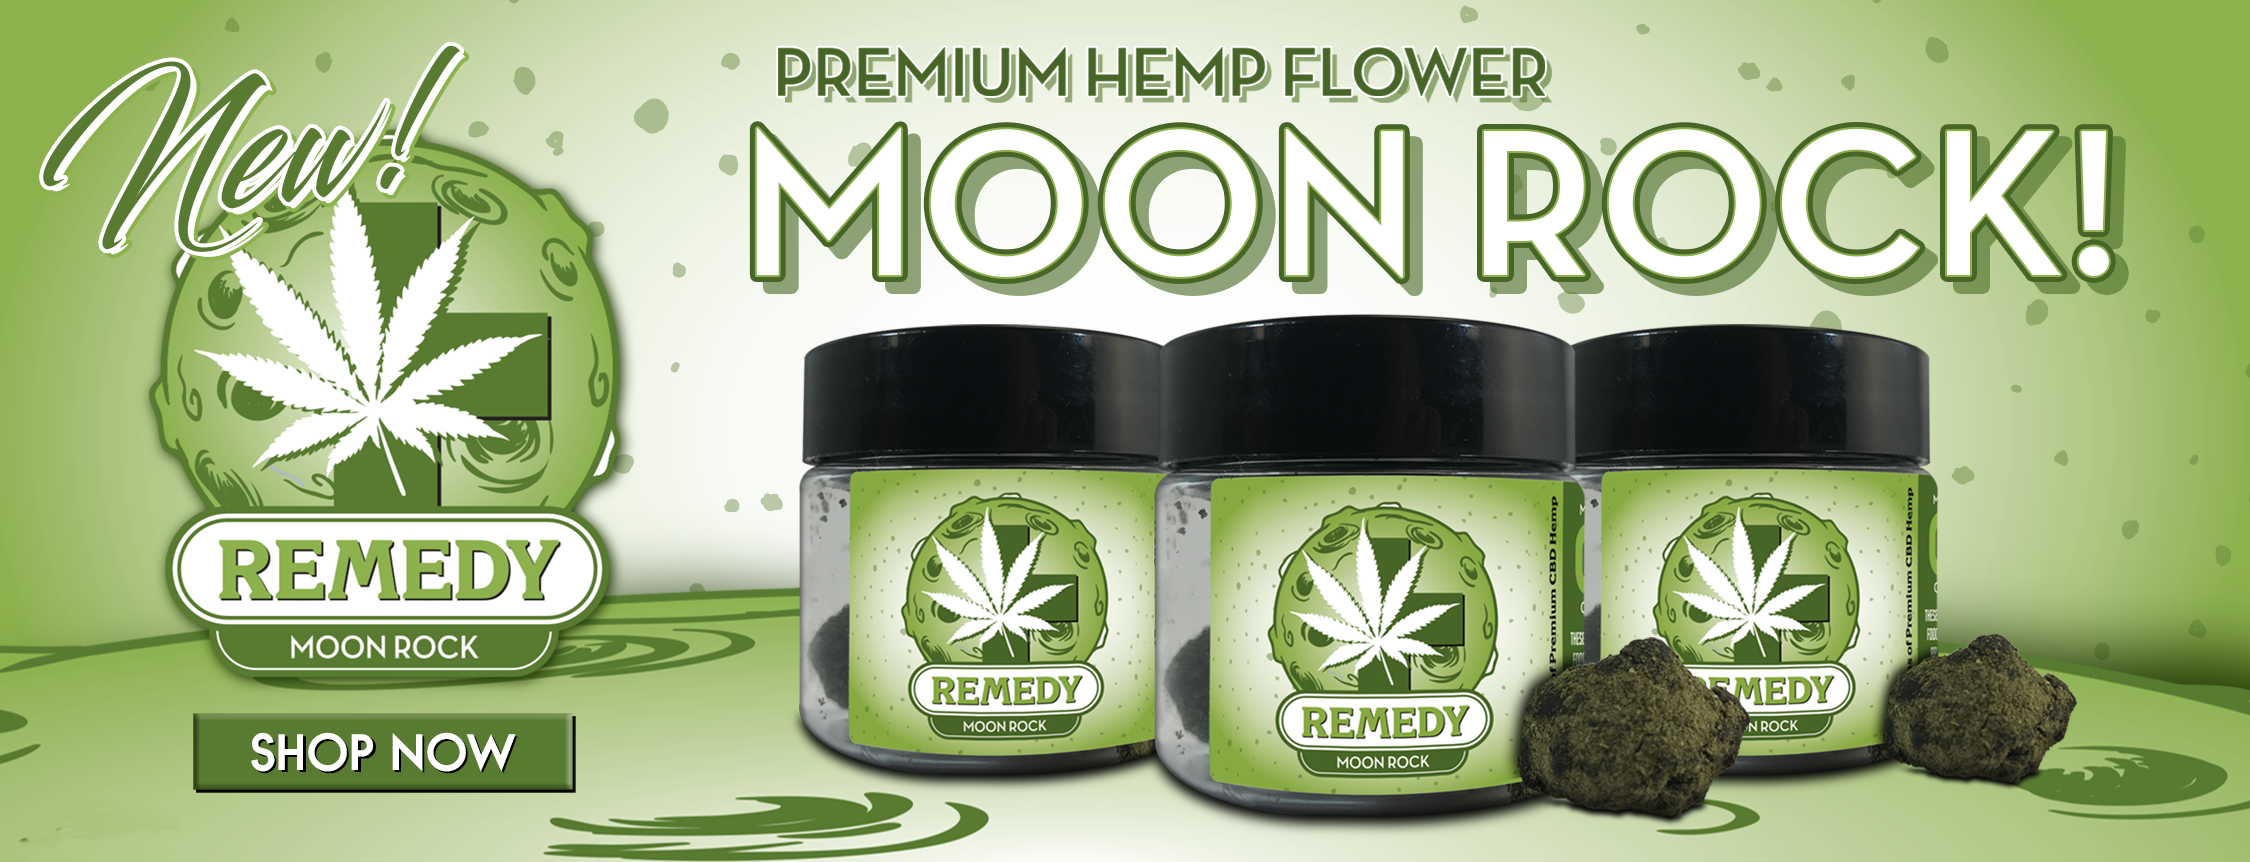 Remedy Moon Rock Premium Hemp Flower